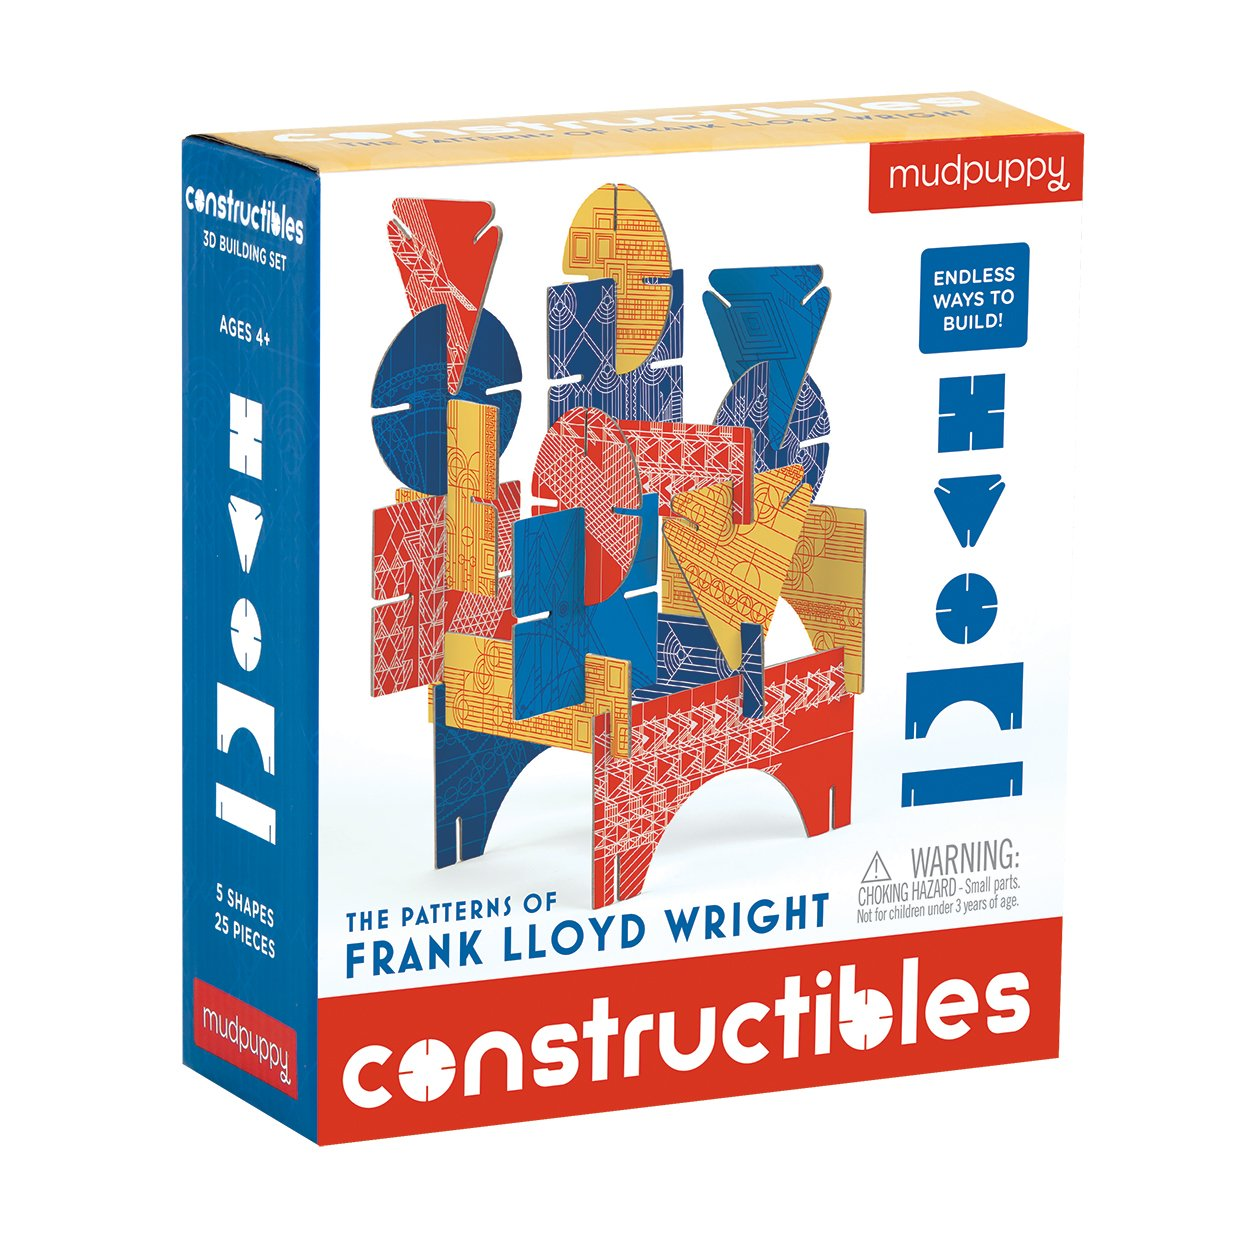 Constructibles: The Patterns of Frank Lloyd Wright